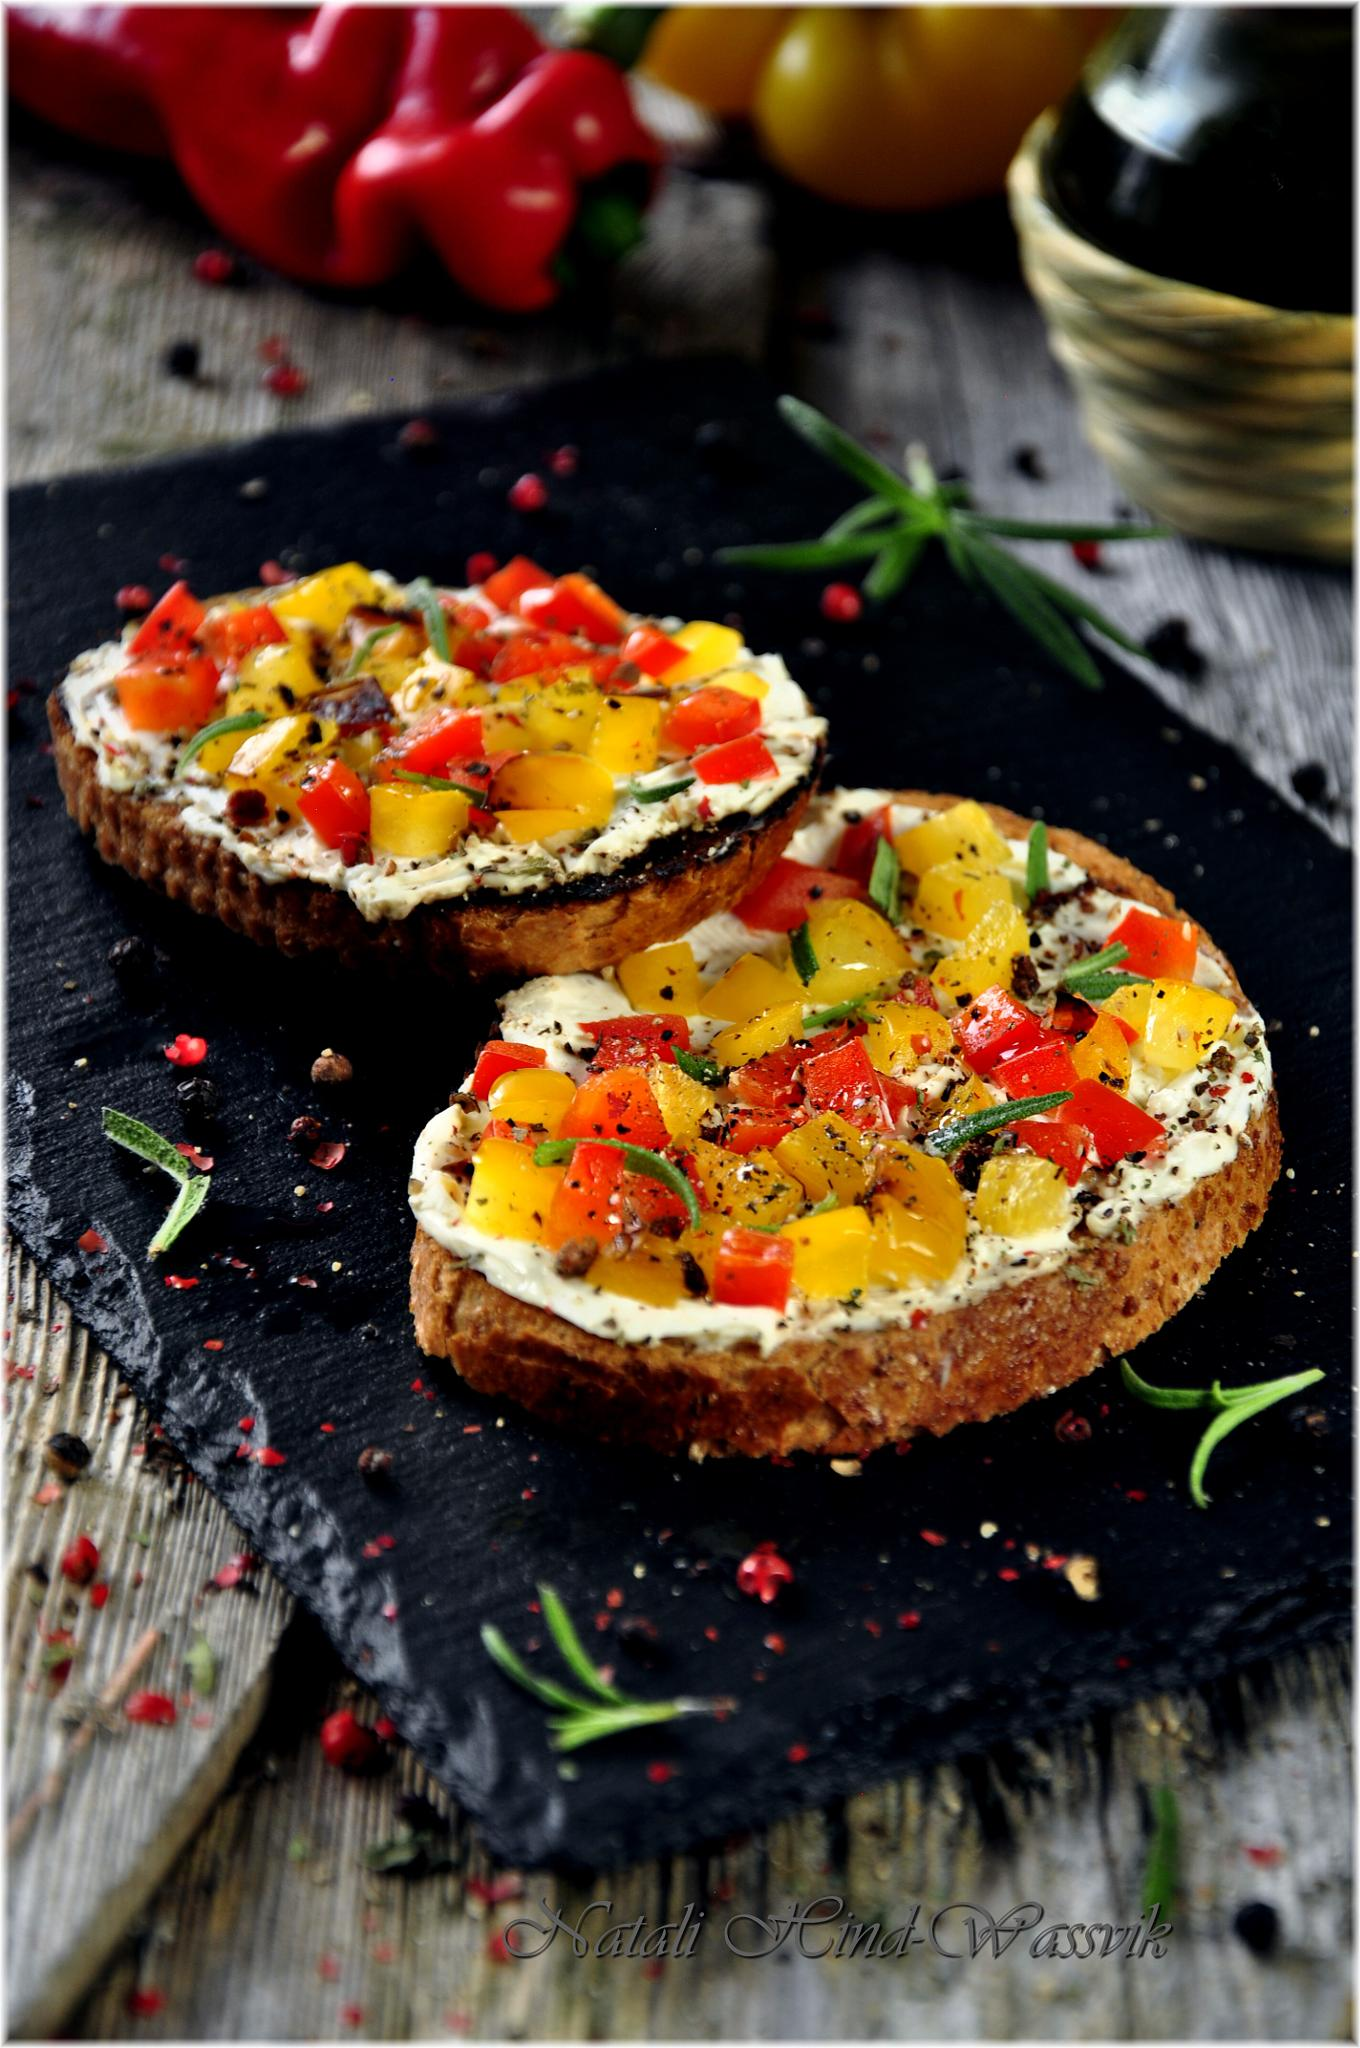 Fried crusty bread with Philadelphia cheese, rosemary and grilled bell peppers by natalja.hind.wassvik